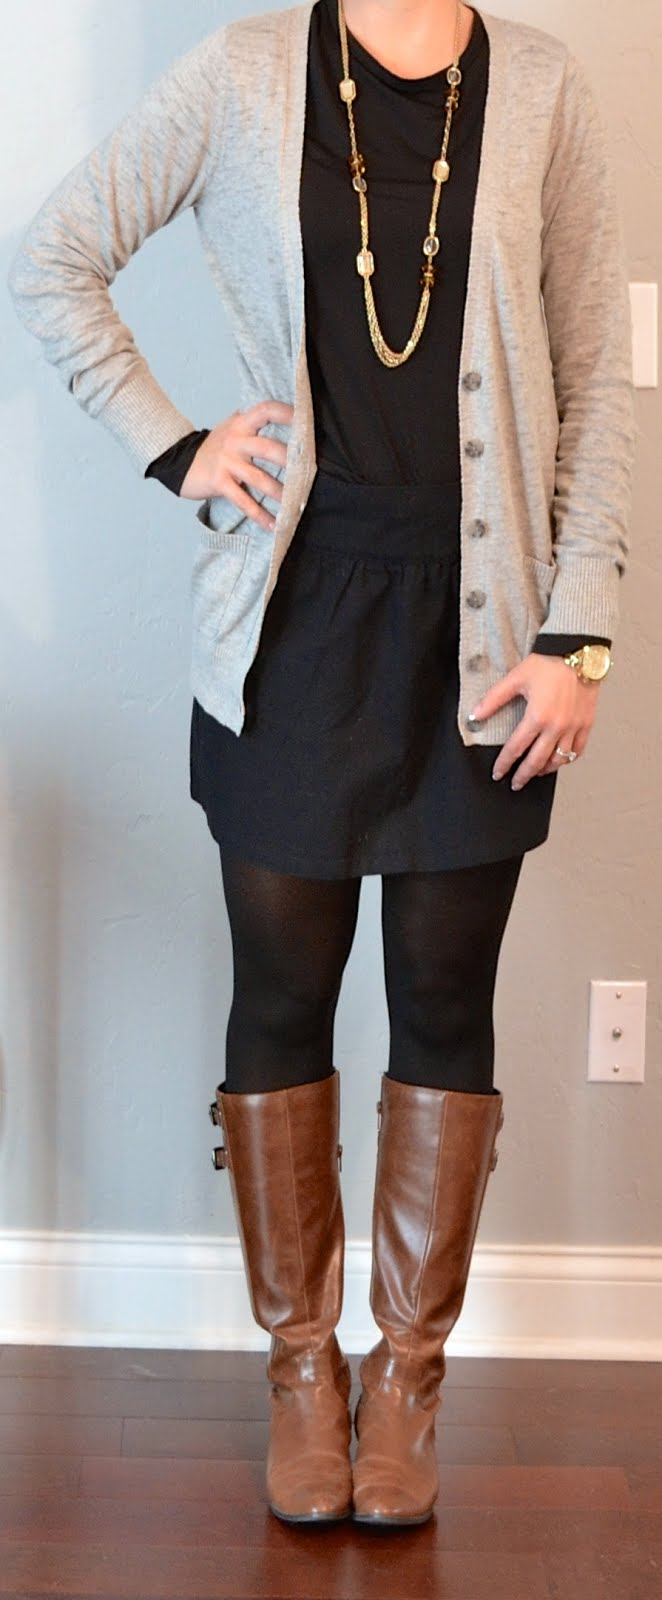 Outfits 21 25 One Suitcase Winter Vacation Capsule